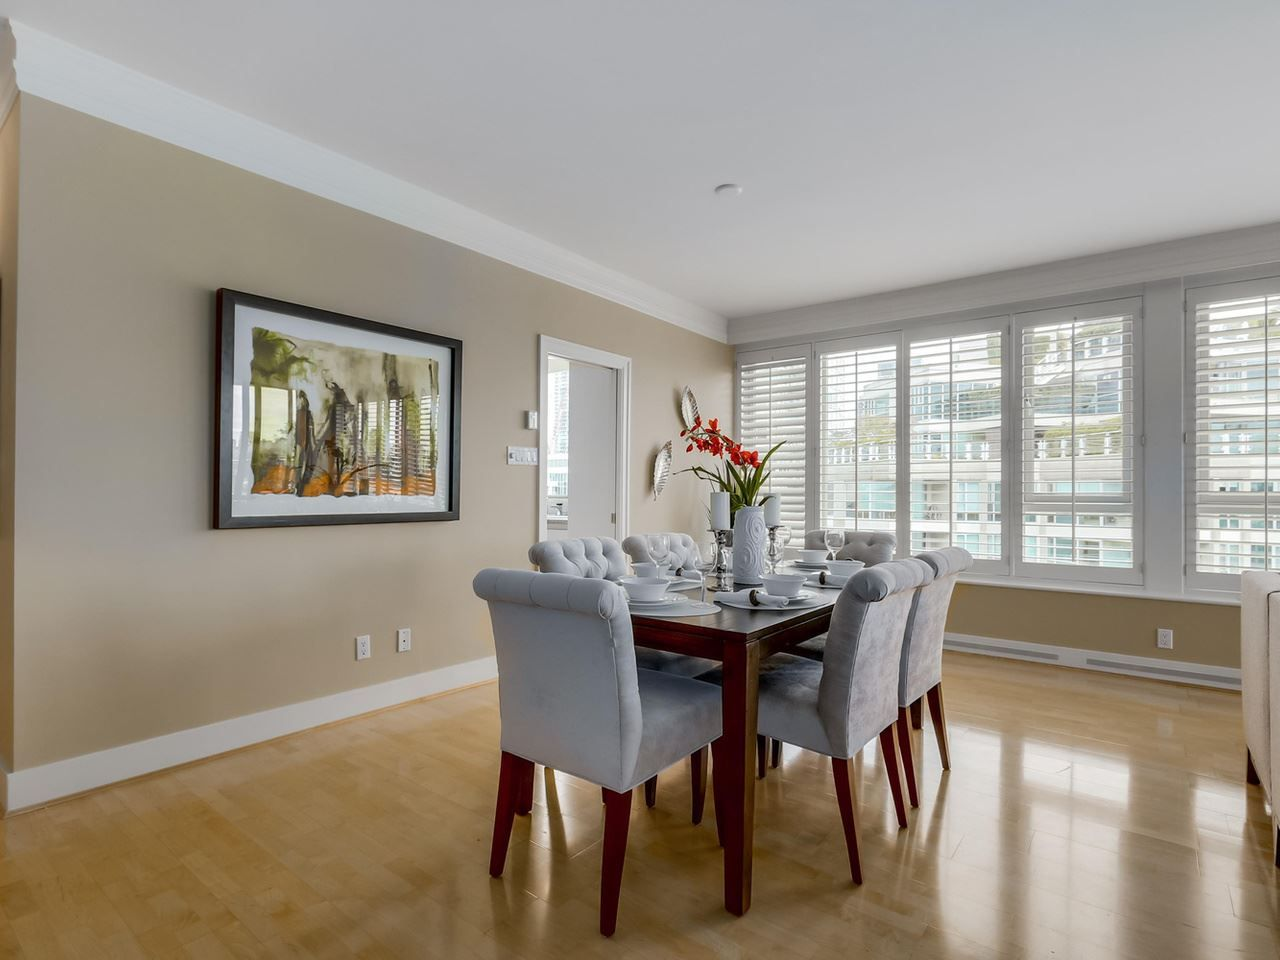 """Photo 7: Photos: 800 1675 HORNBY Street in Vancouver: Yaletown Condo for sale in """"SEAWALK SOUTH"""" (Vancouver West)  : MLS®# R2083569"""